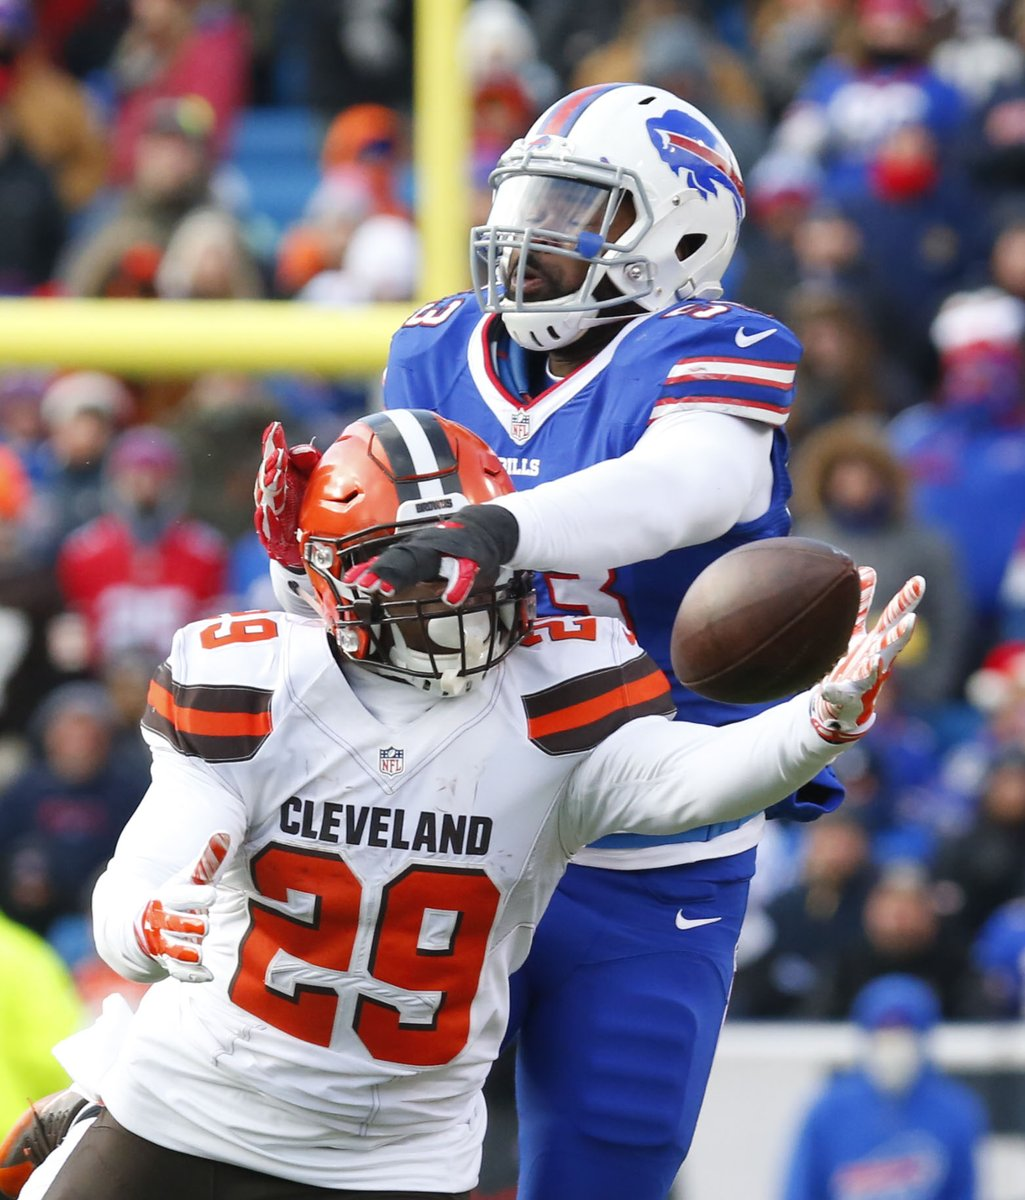 Former Bills linebacker Zach Brown, breaking up a pass against the Browns, has lofty expectations this season with the Redskins. (Harry Scull Jr./Buffalo News)